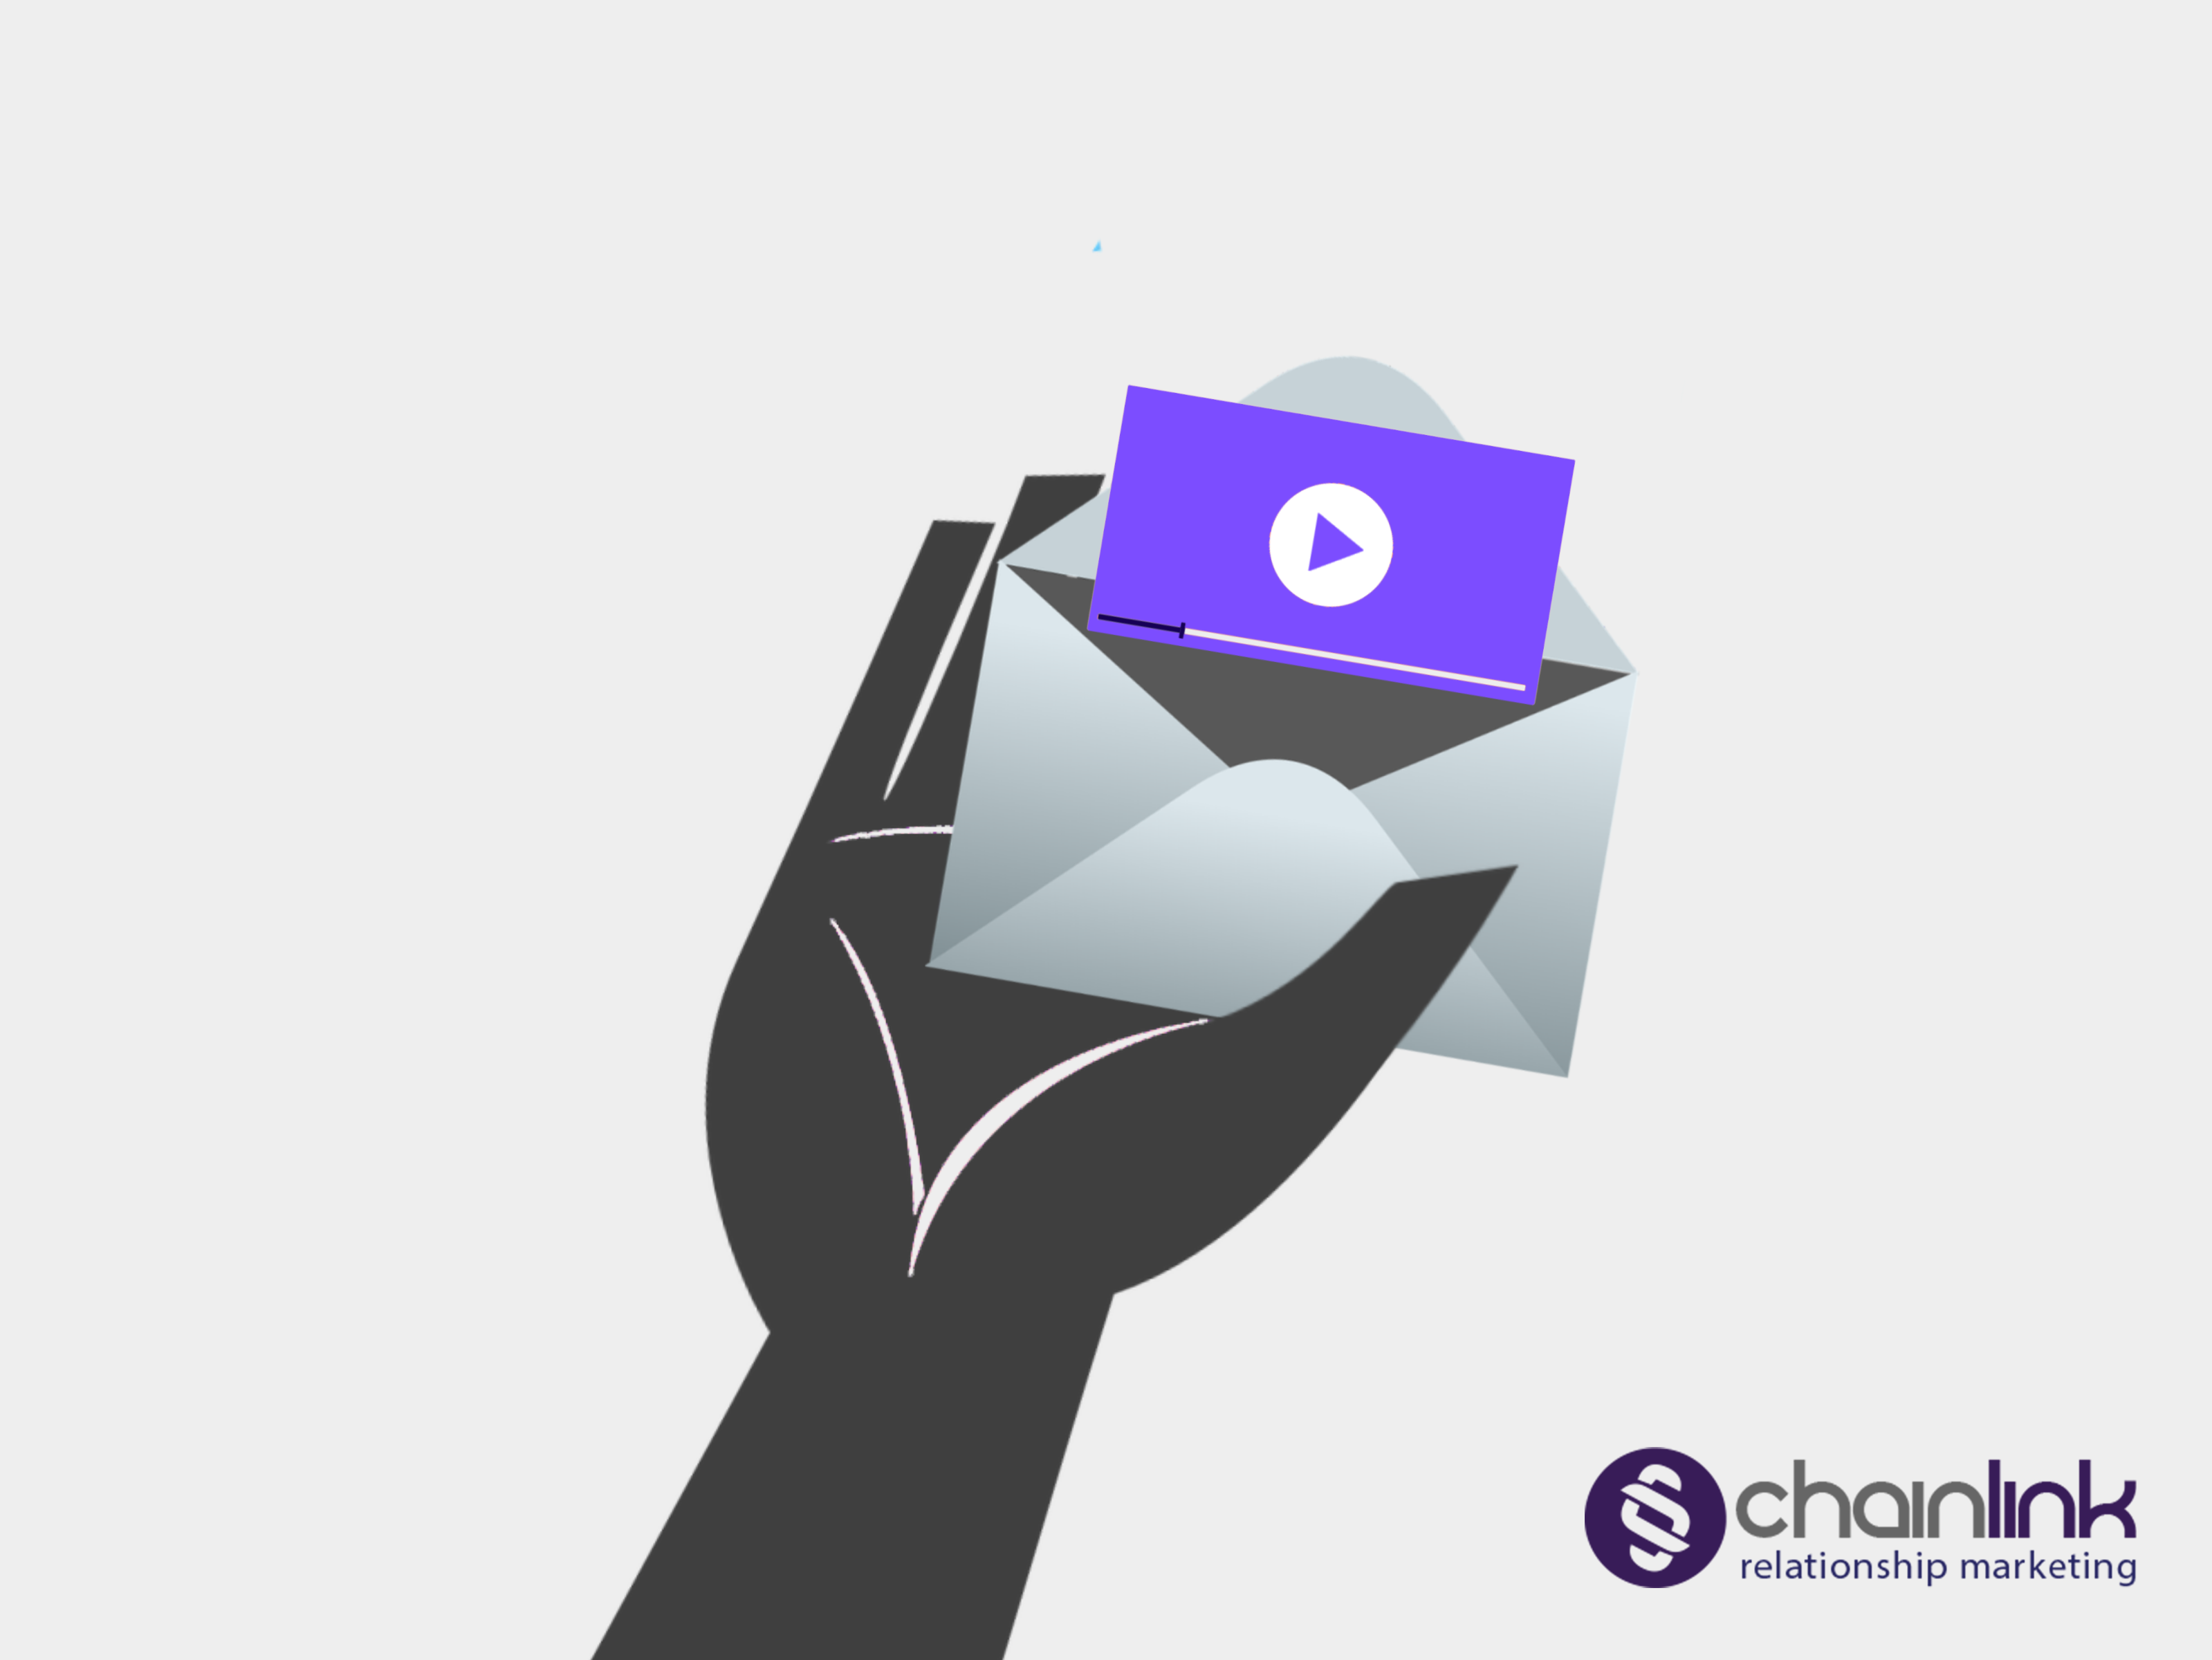 email video - Chainlink Relationship Marketing